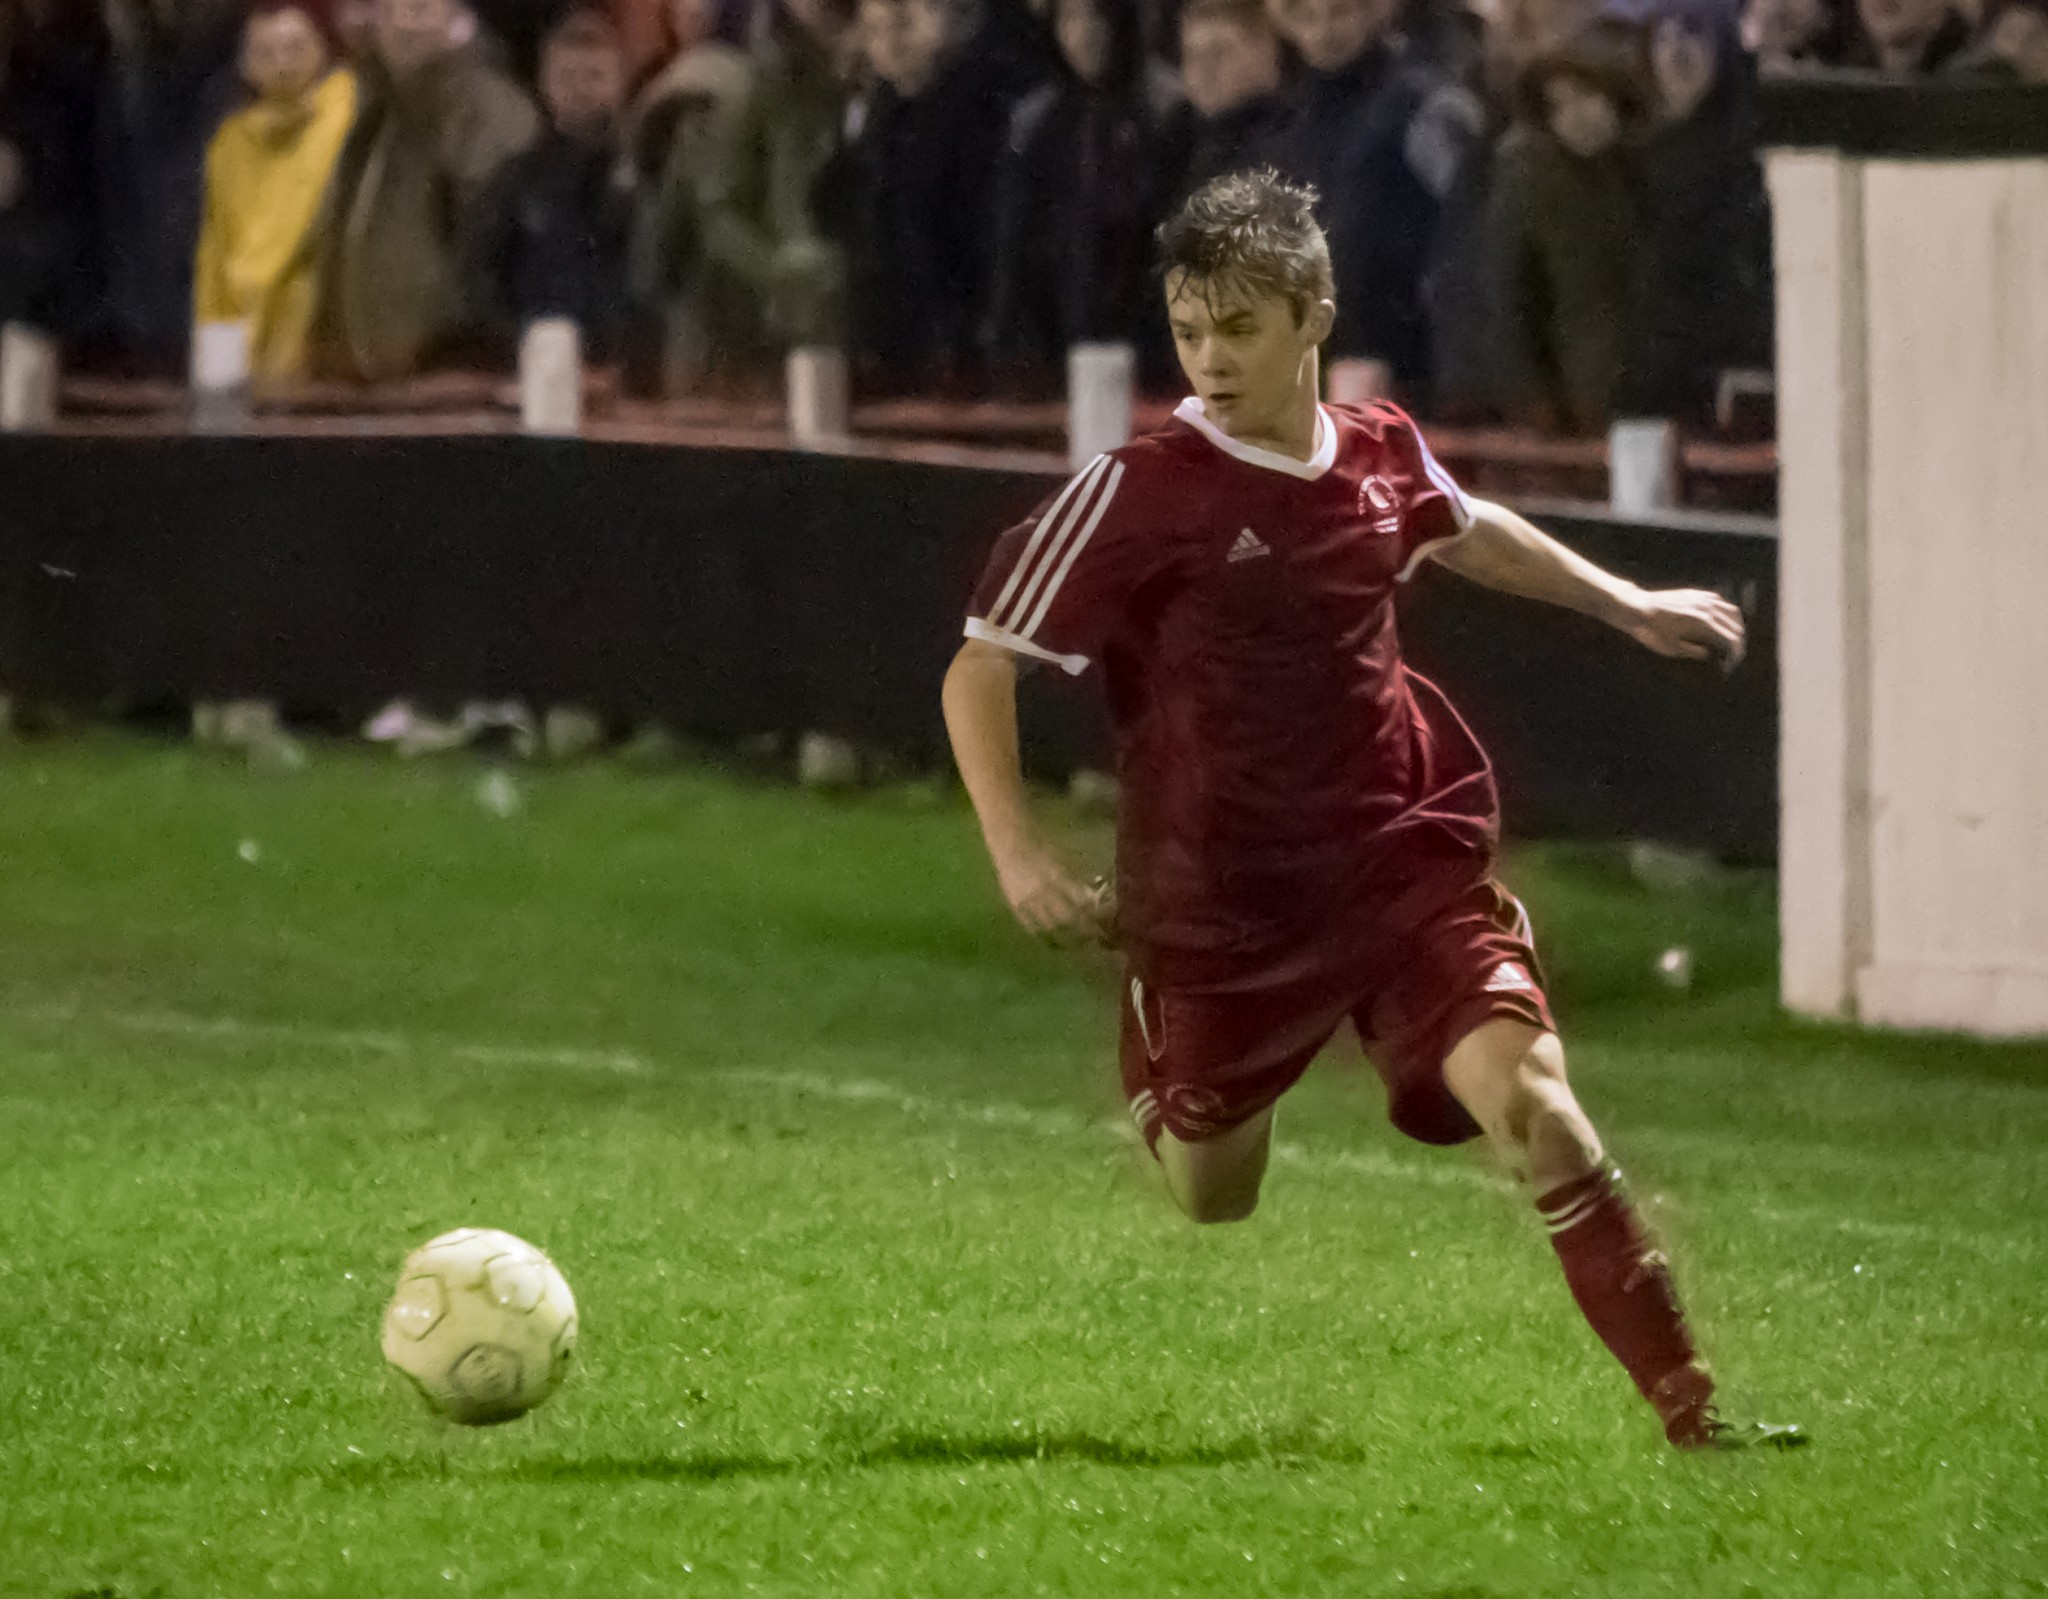 Bracknell Town retain impressive young full-back